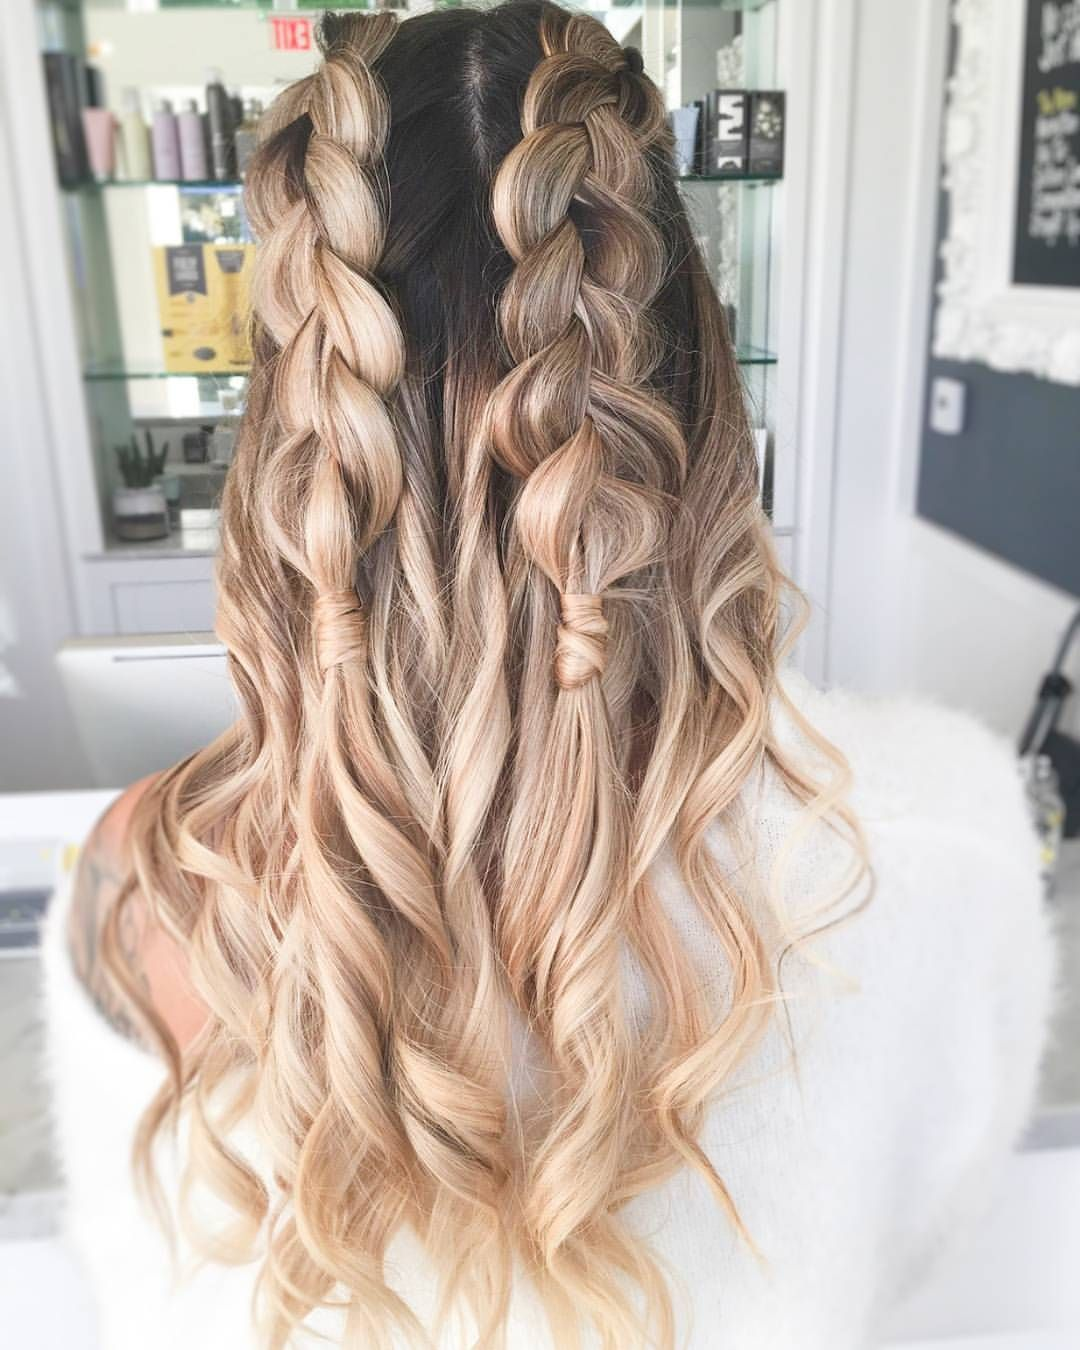 pin by craig nadine on braids hairstyles in 2019   hair